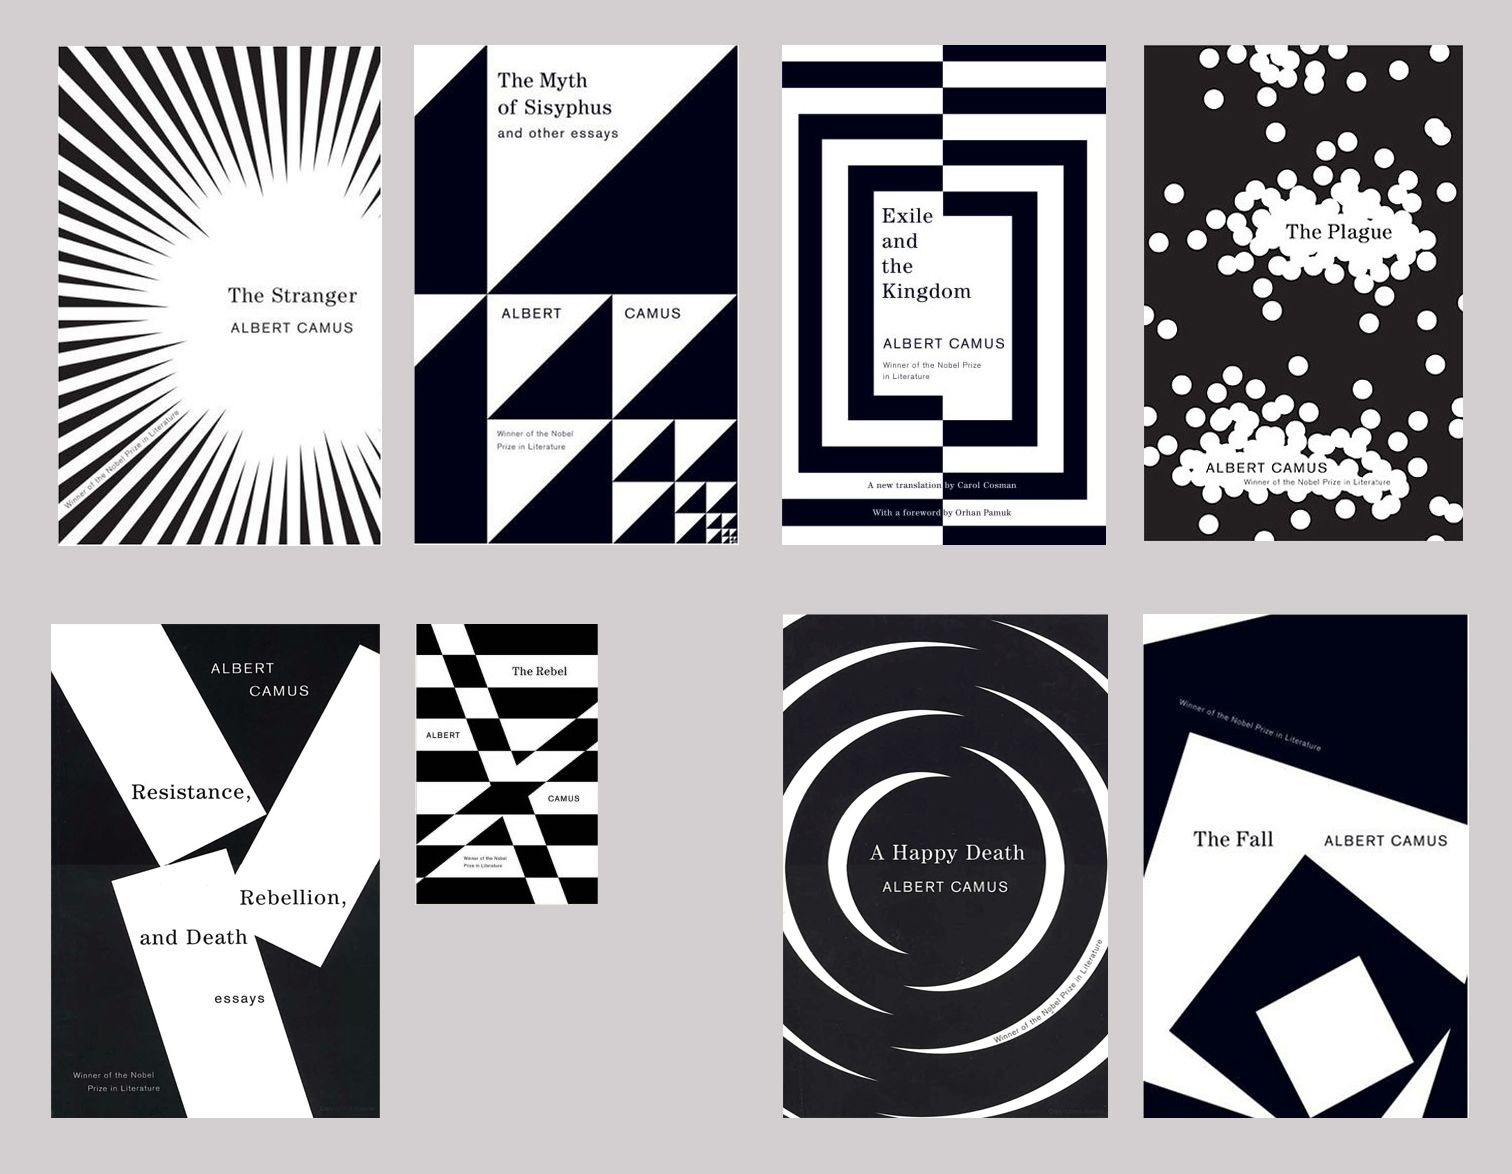 Book Cover Design Principles : Albert camus covers publisher vintage designer helen